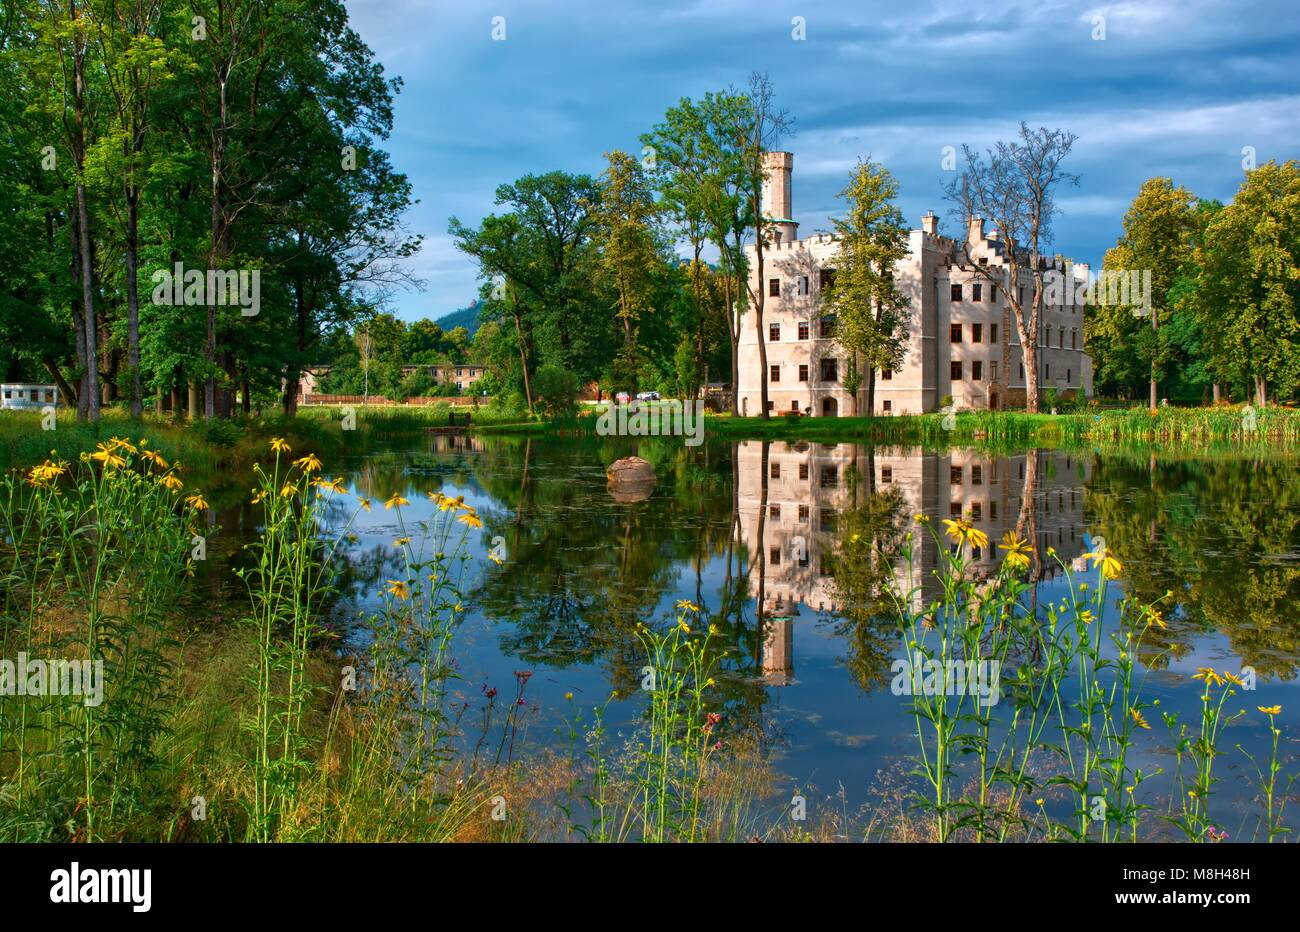 Neo Gothic Style Castle Surrounded By An English Landscape Garden